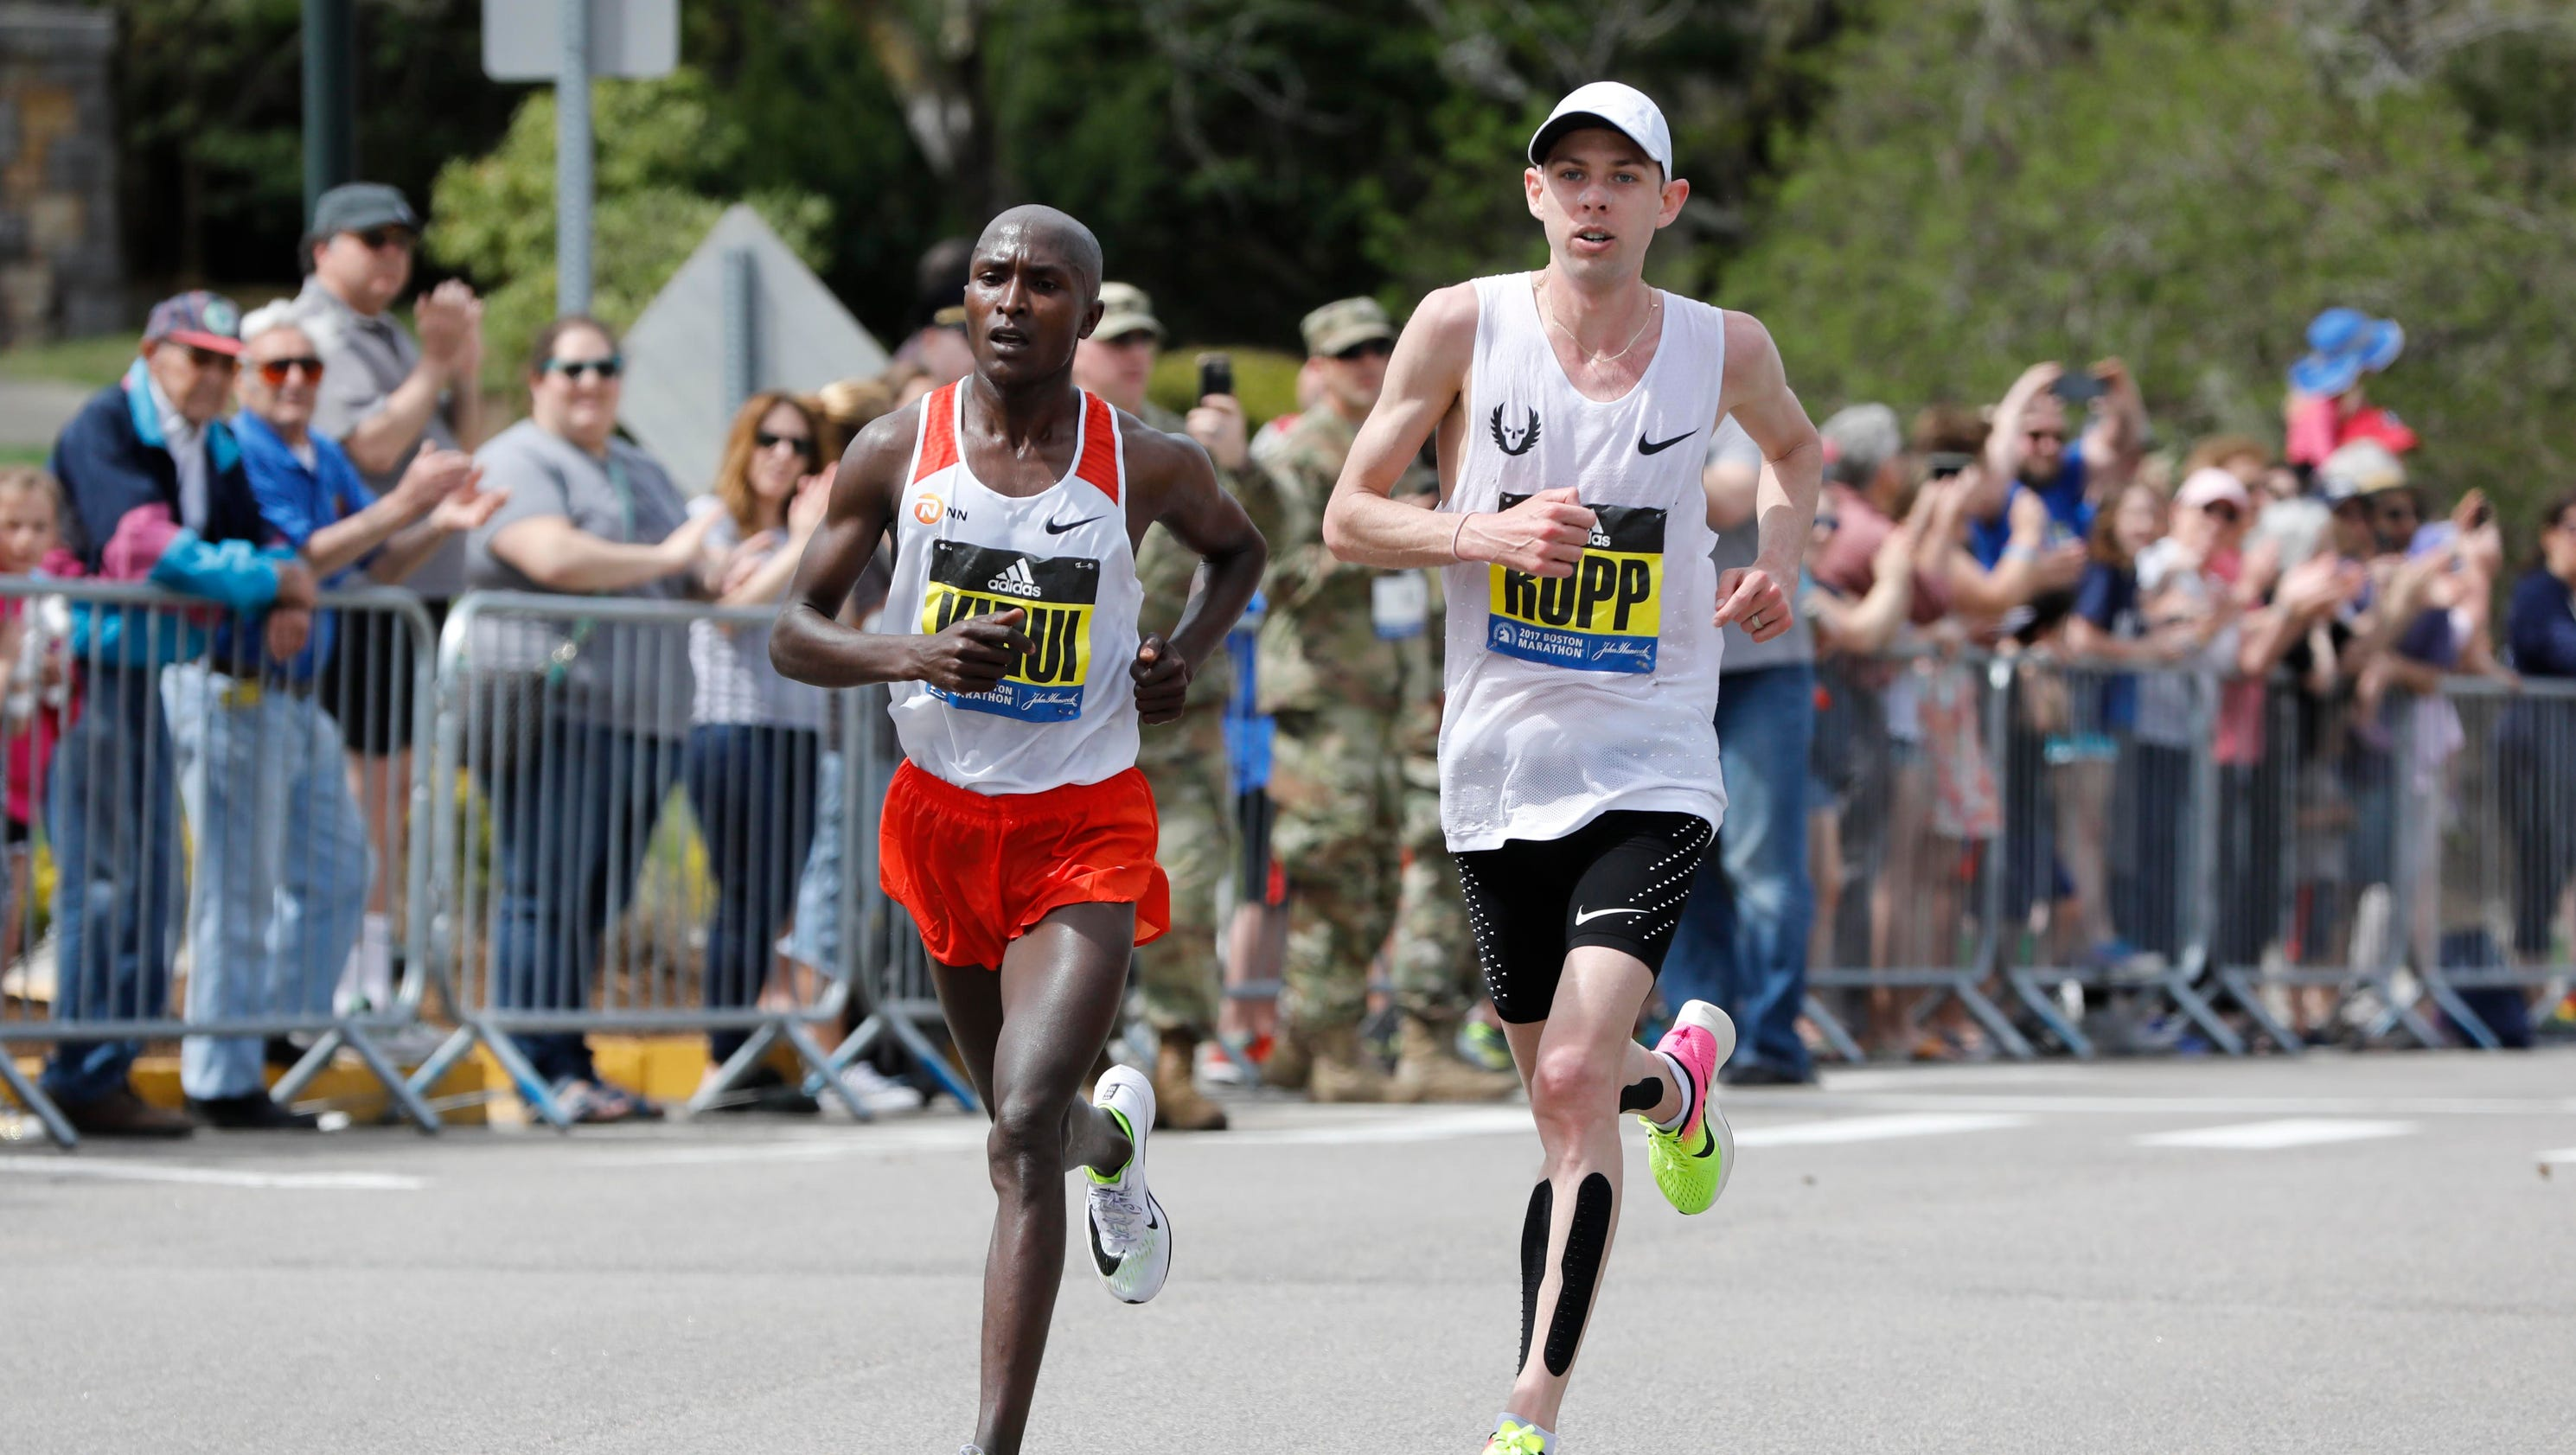 marathon men Boston marathon officials have announced that men claiming to be transgender women, will be allowed to compete in the women's category for this year's race, reports say.